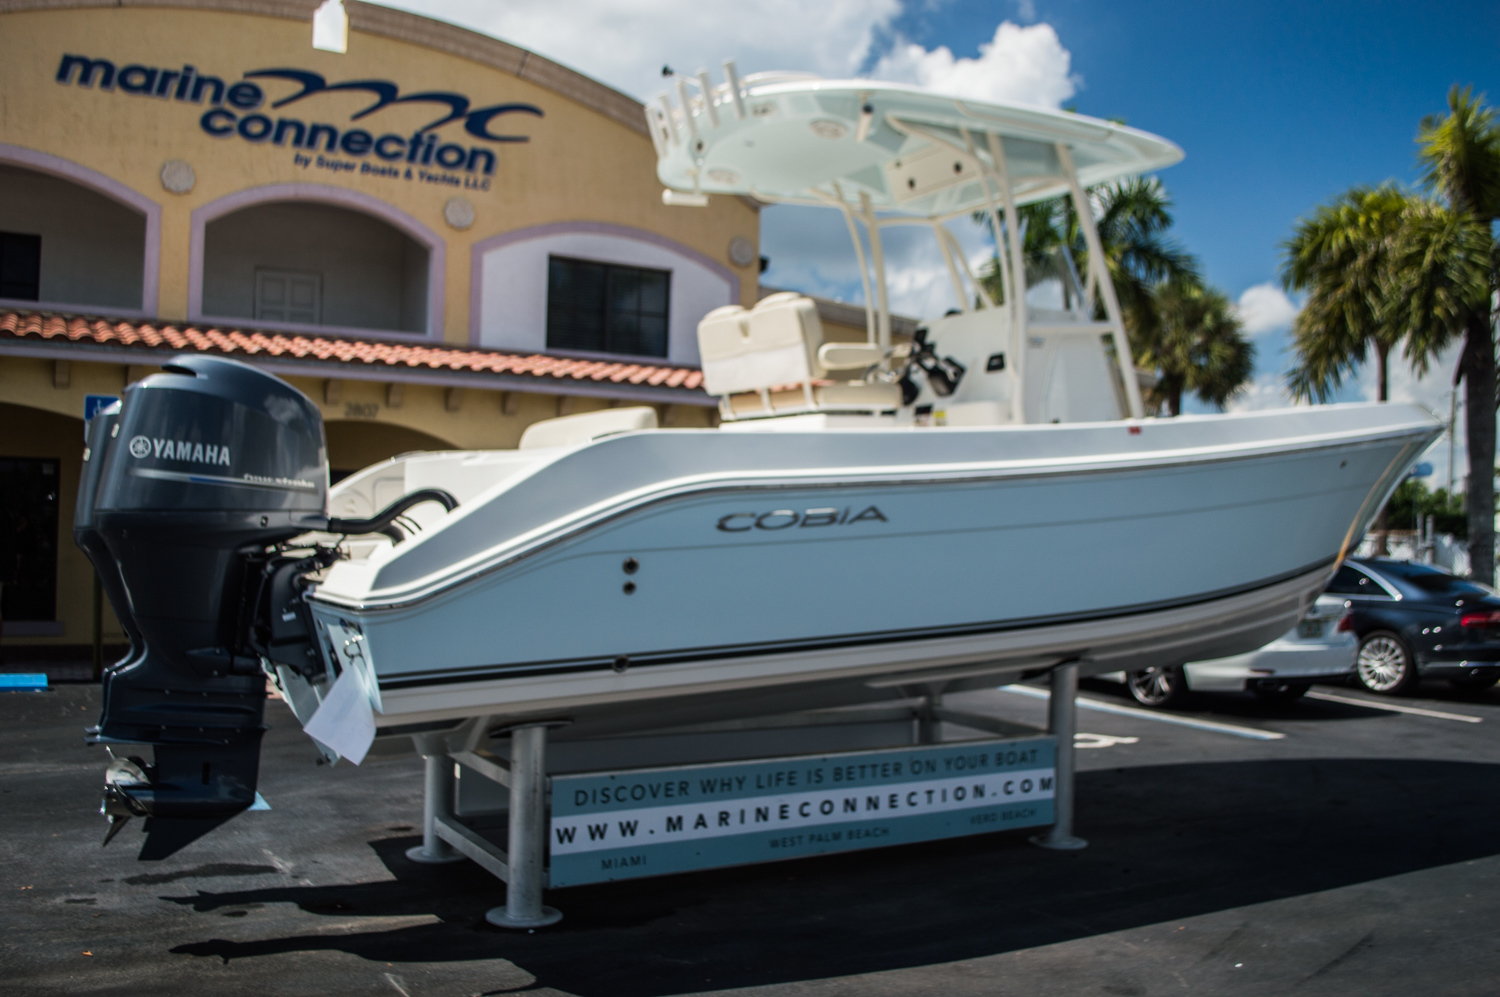 Thumbnail 7 for New 2015 Cobia 256 Center Console boat for sale in West Palm Beach, FL